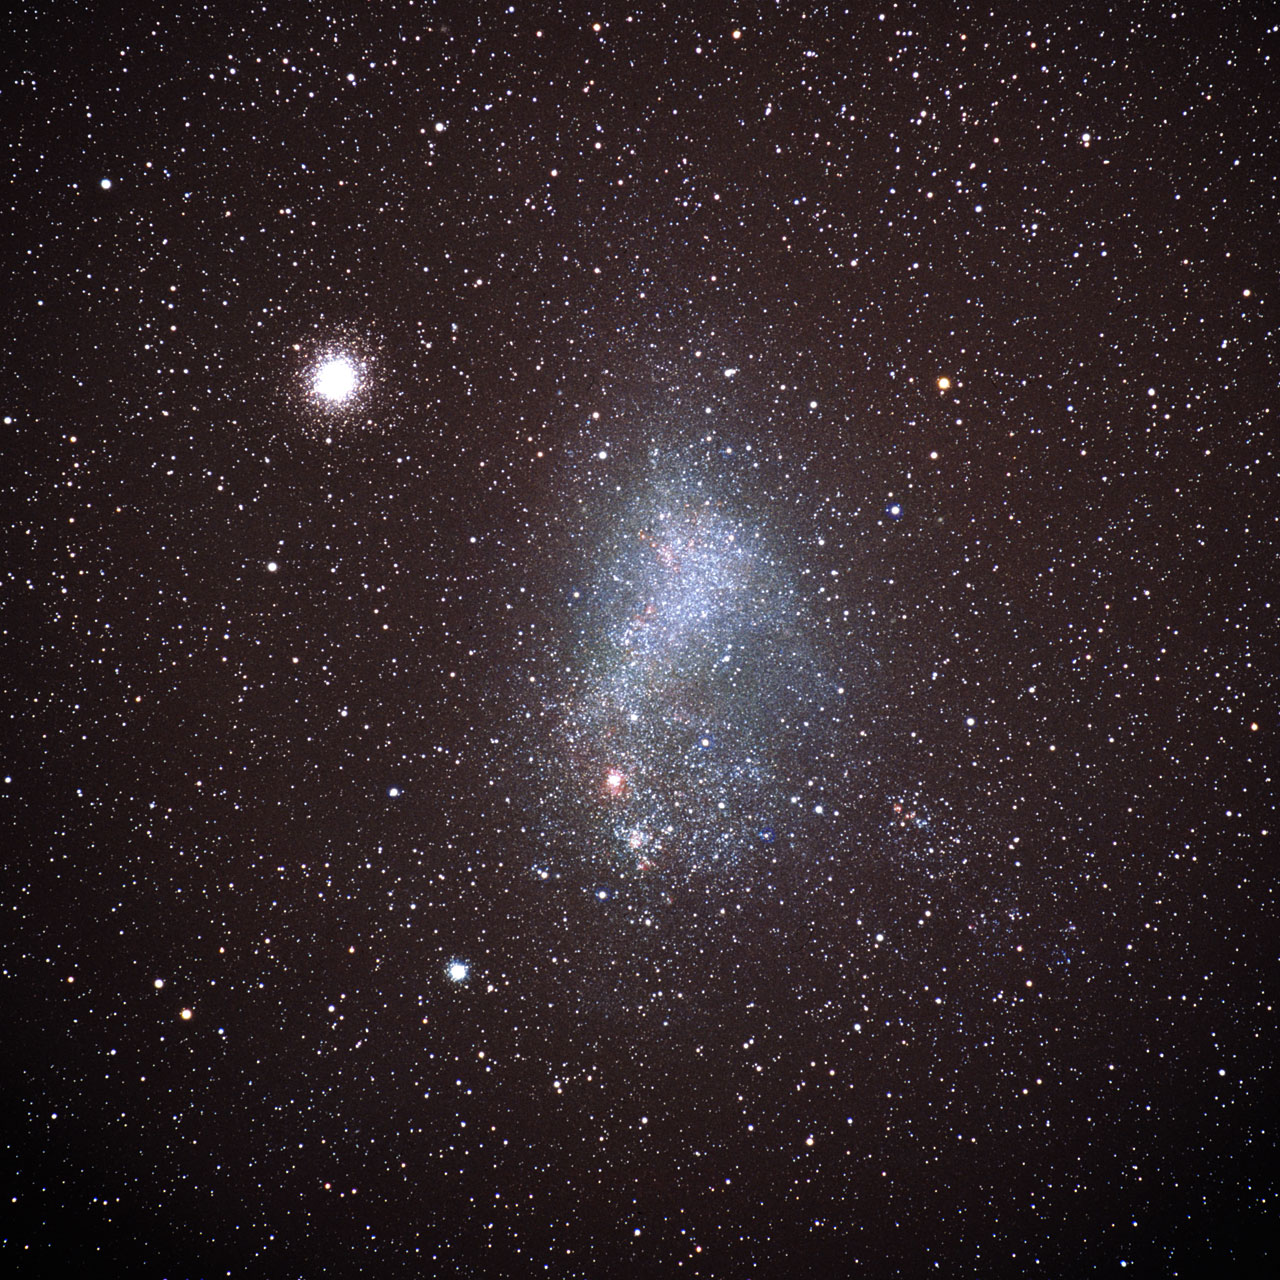 Globular cluster 47 Tucanae and the Small Magellanic Cloud (ground-based image)